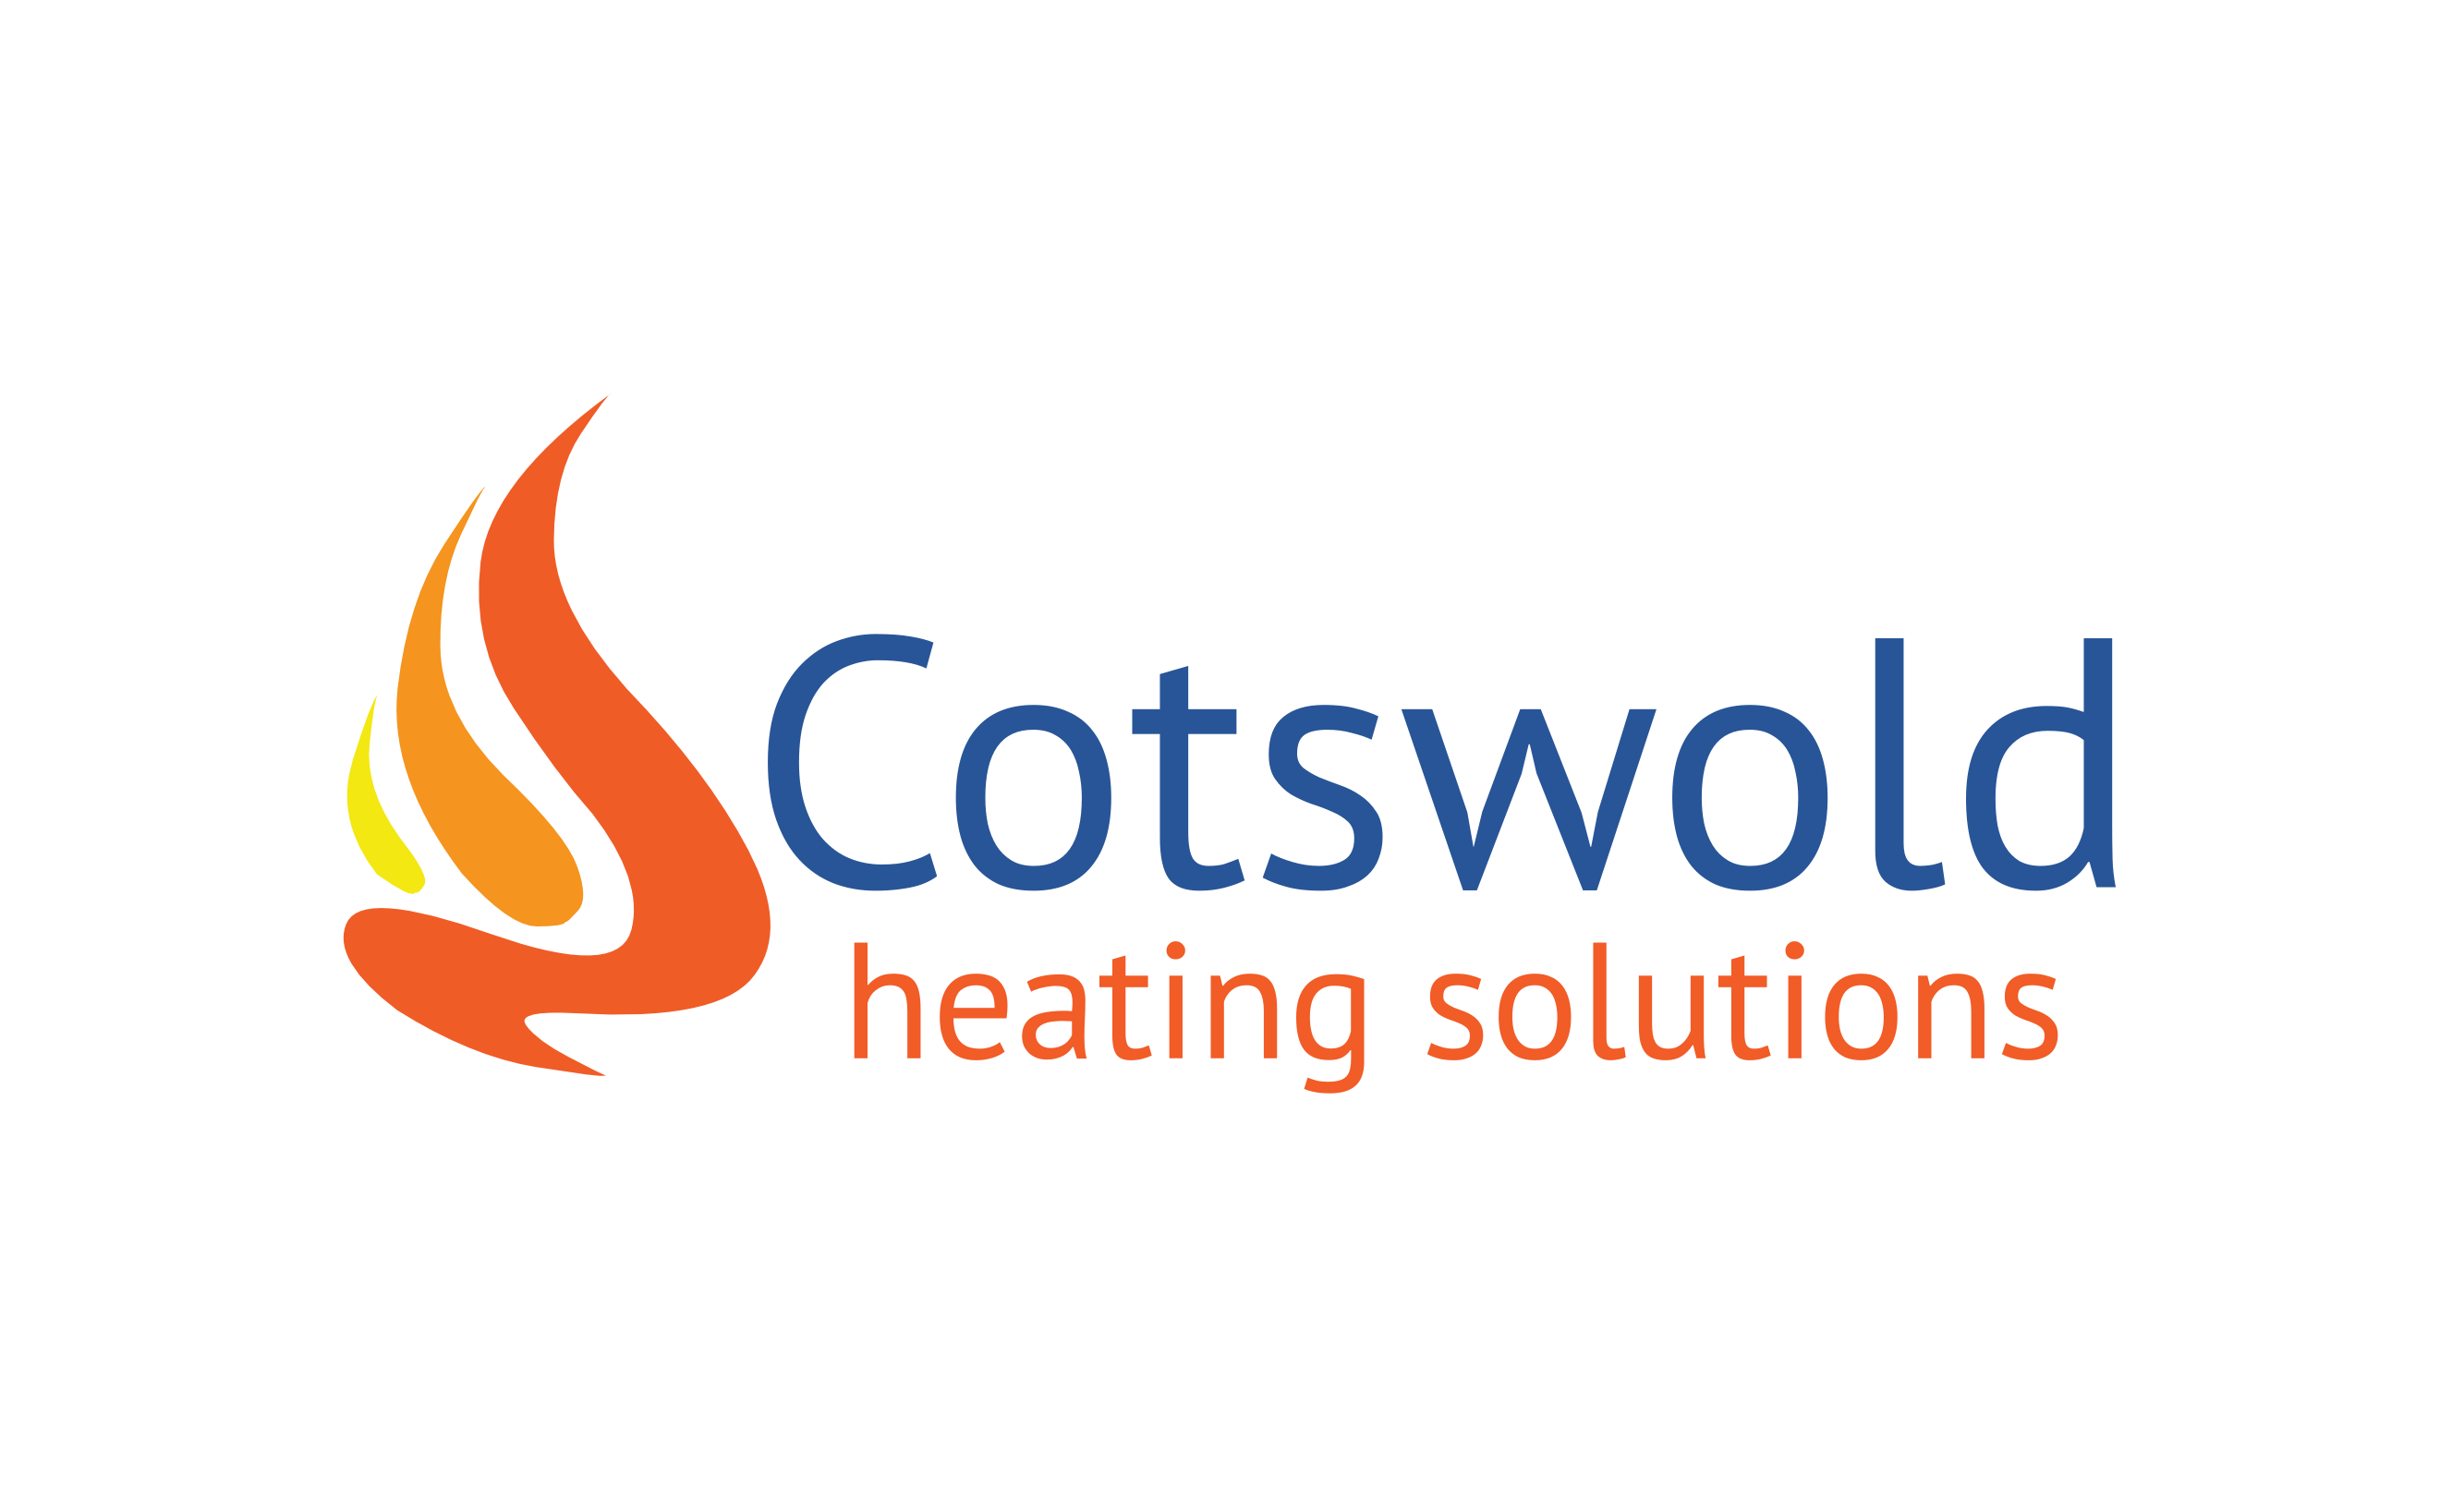 Cotswold Heating Solutions